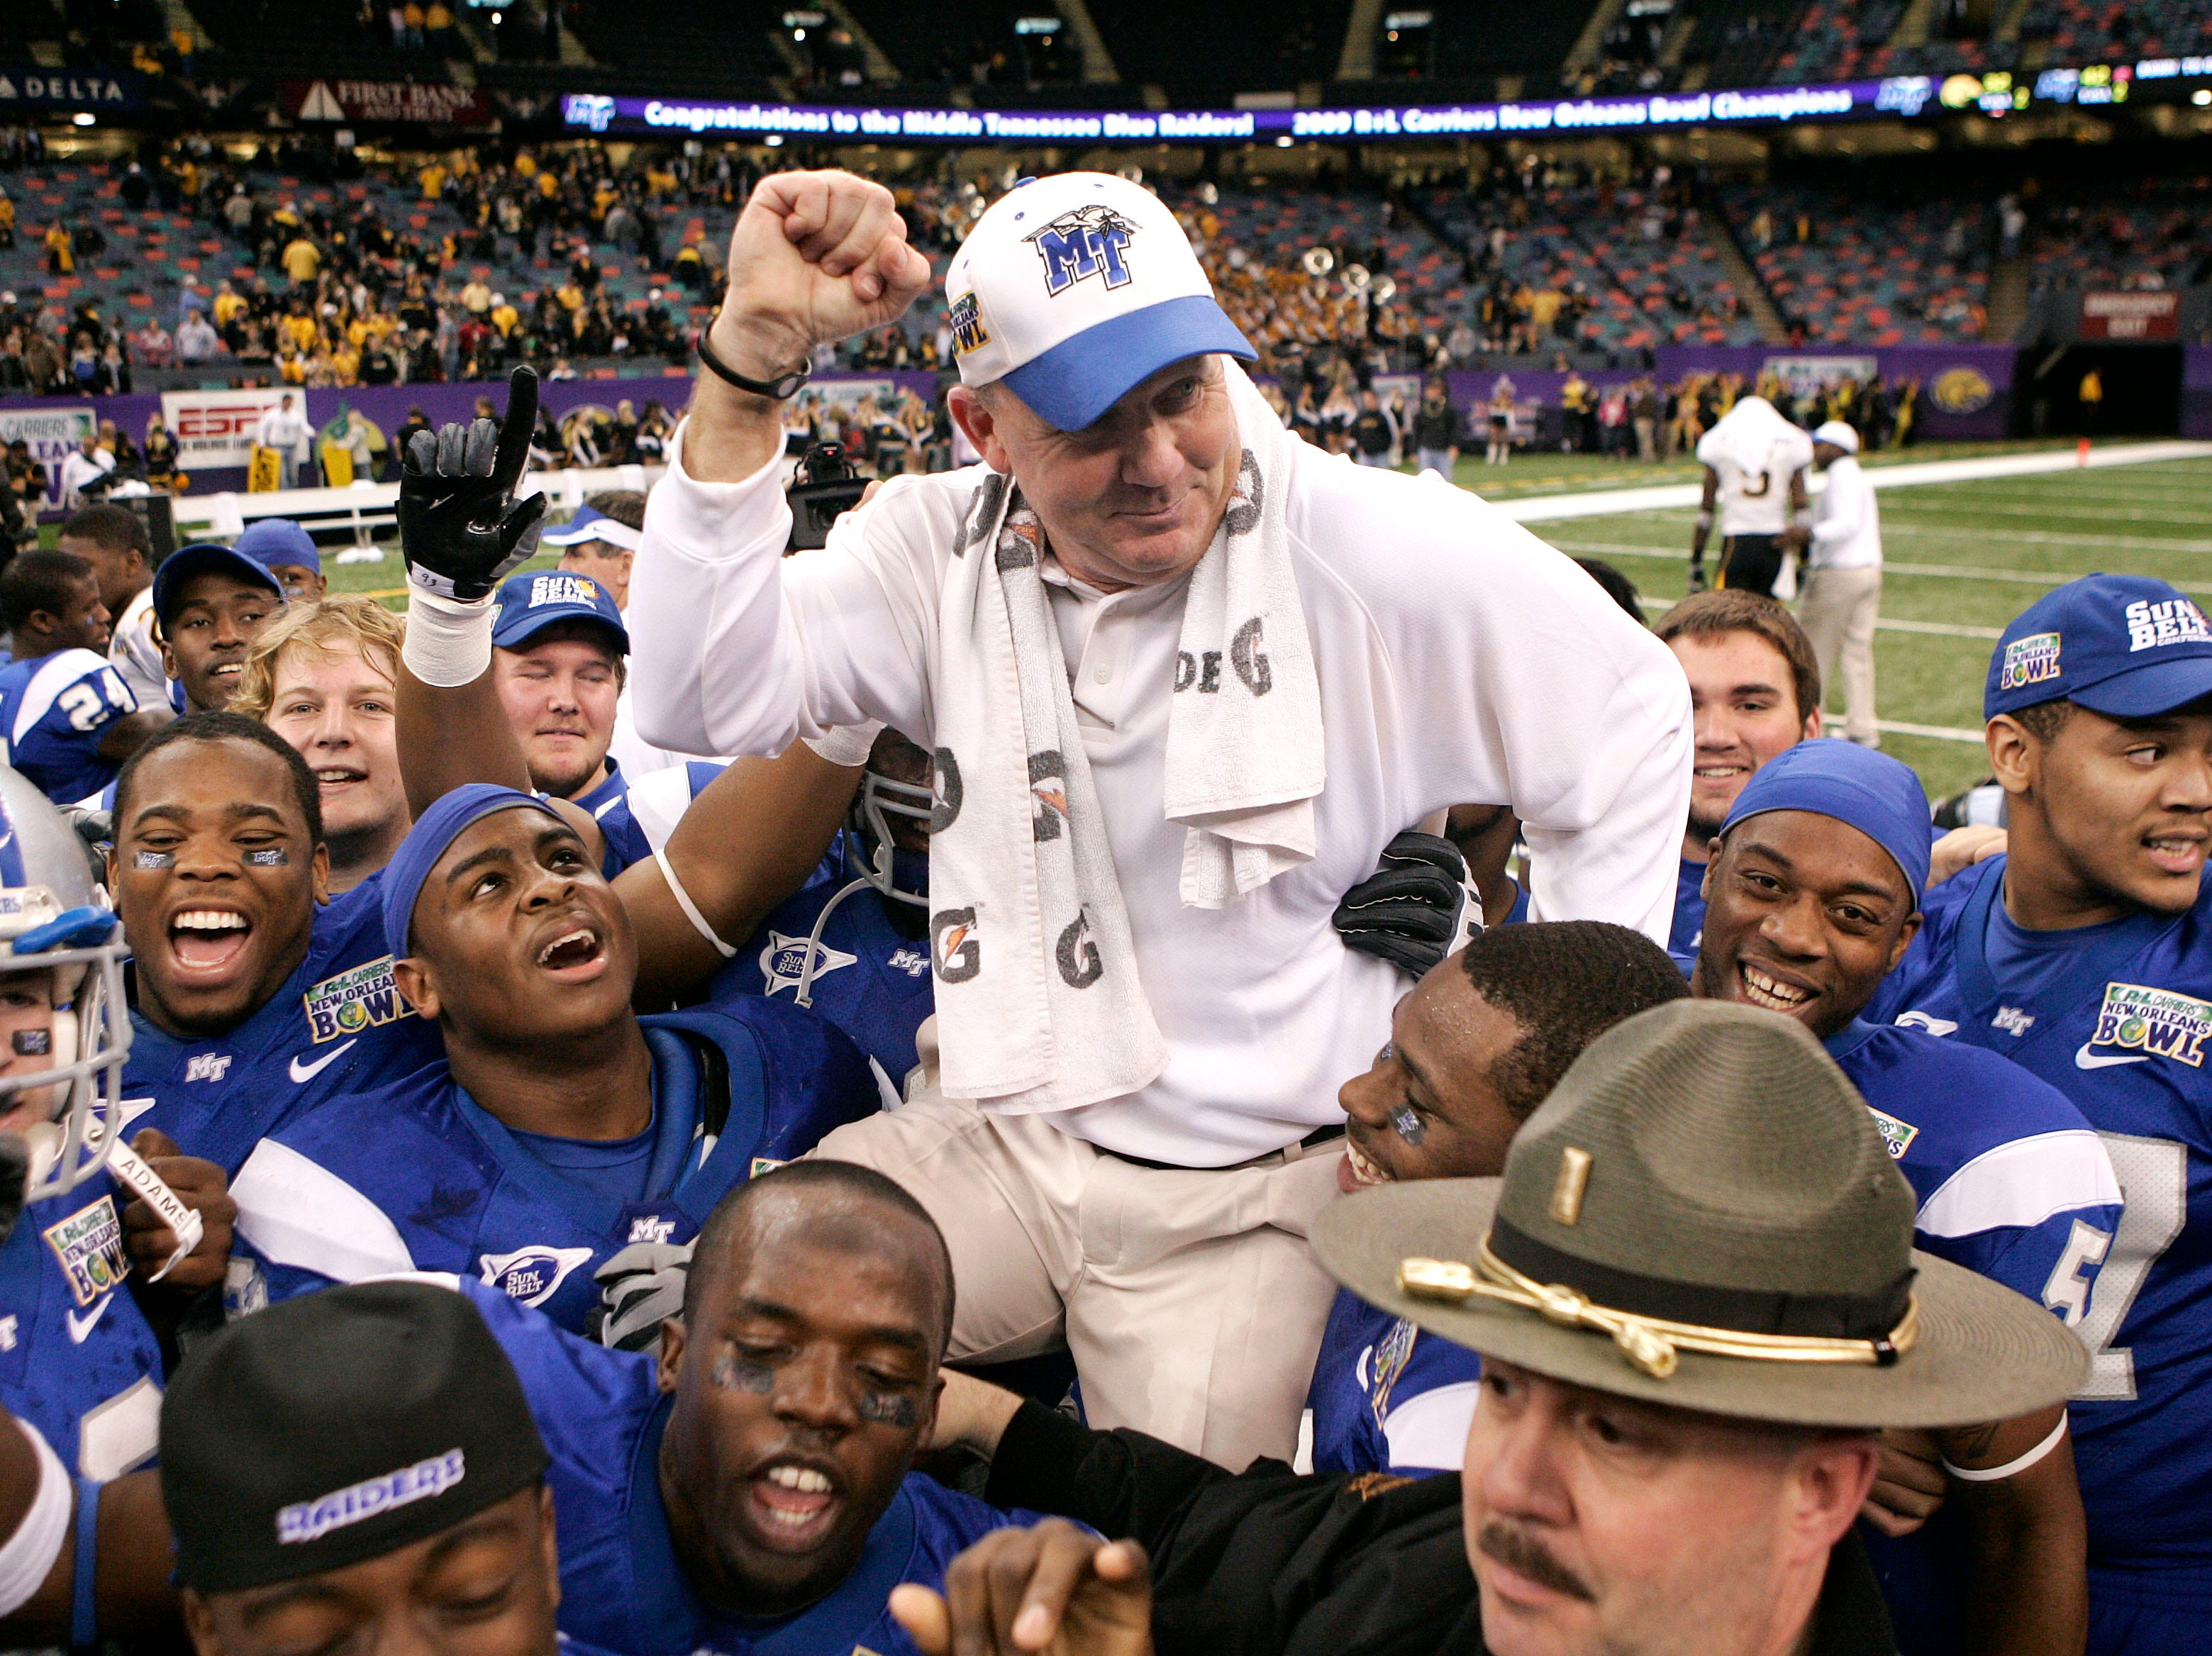 Middle Tennessee head coach Rick Stockstill celebrates with his players after the team defeated Southern Mississippi 42-32 in the New Orleans Bowl NCAA college football game in New Orleans, Sunday, Dec. 20, 2009. (AP Photo/Patrick Semansky)